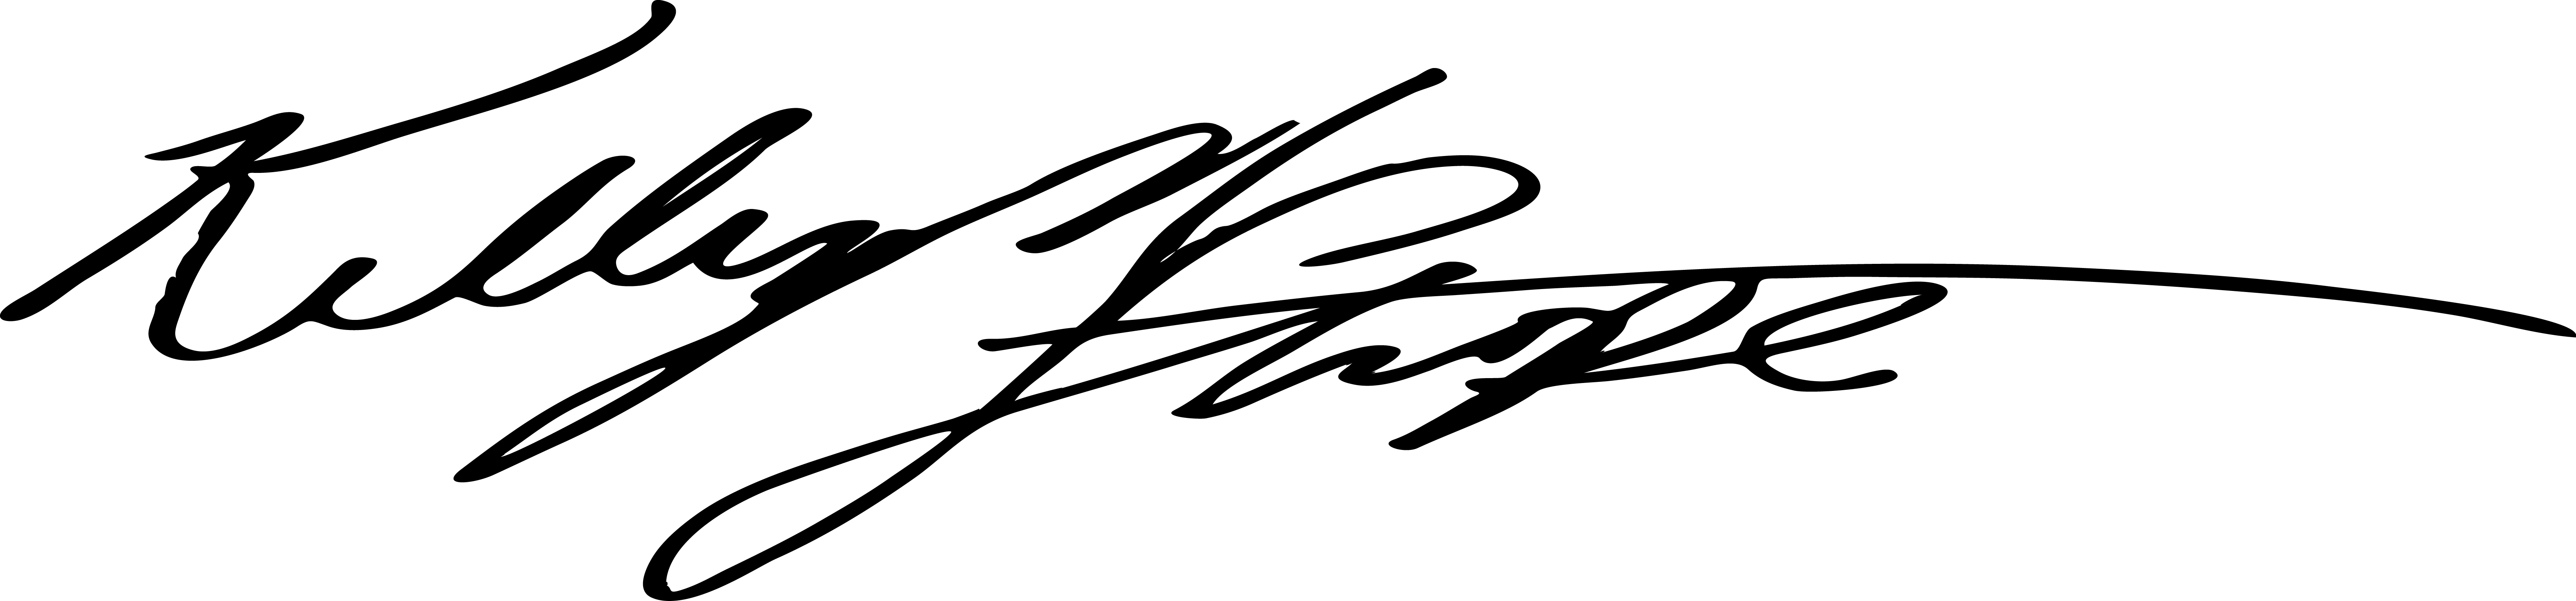 Kelly Strope's Signature